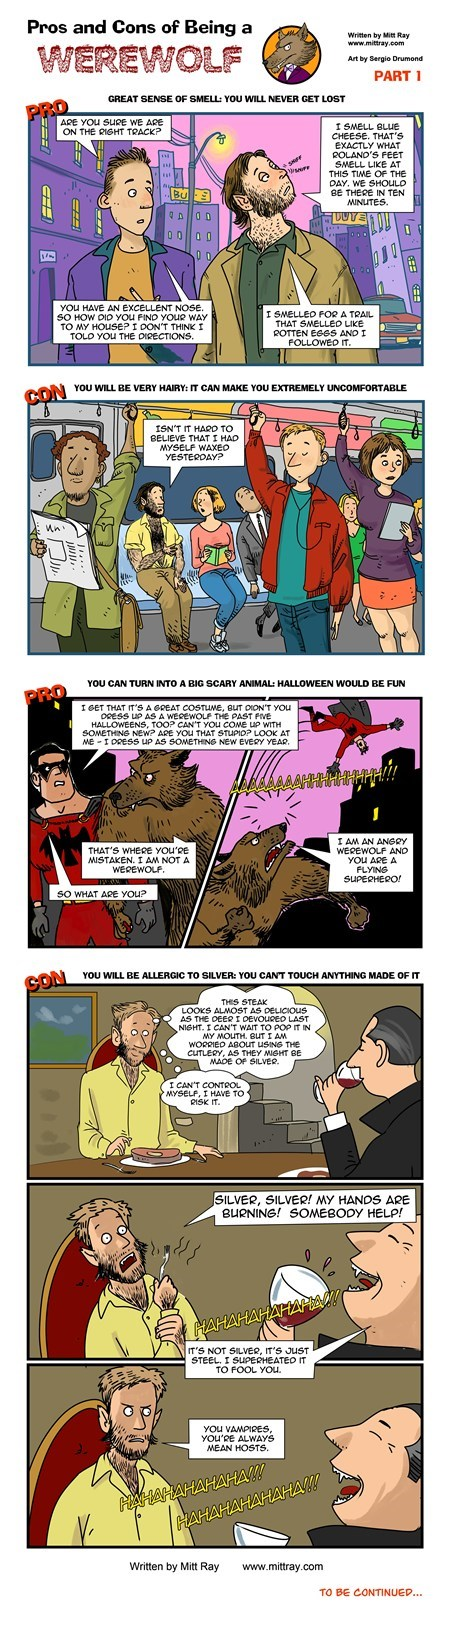 halloween,werewolves,web comics